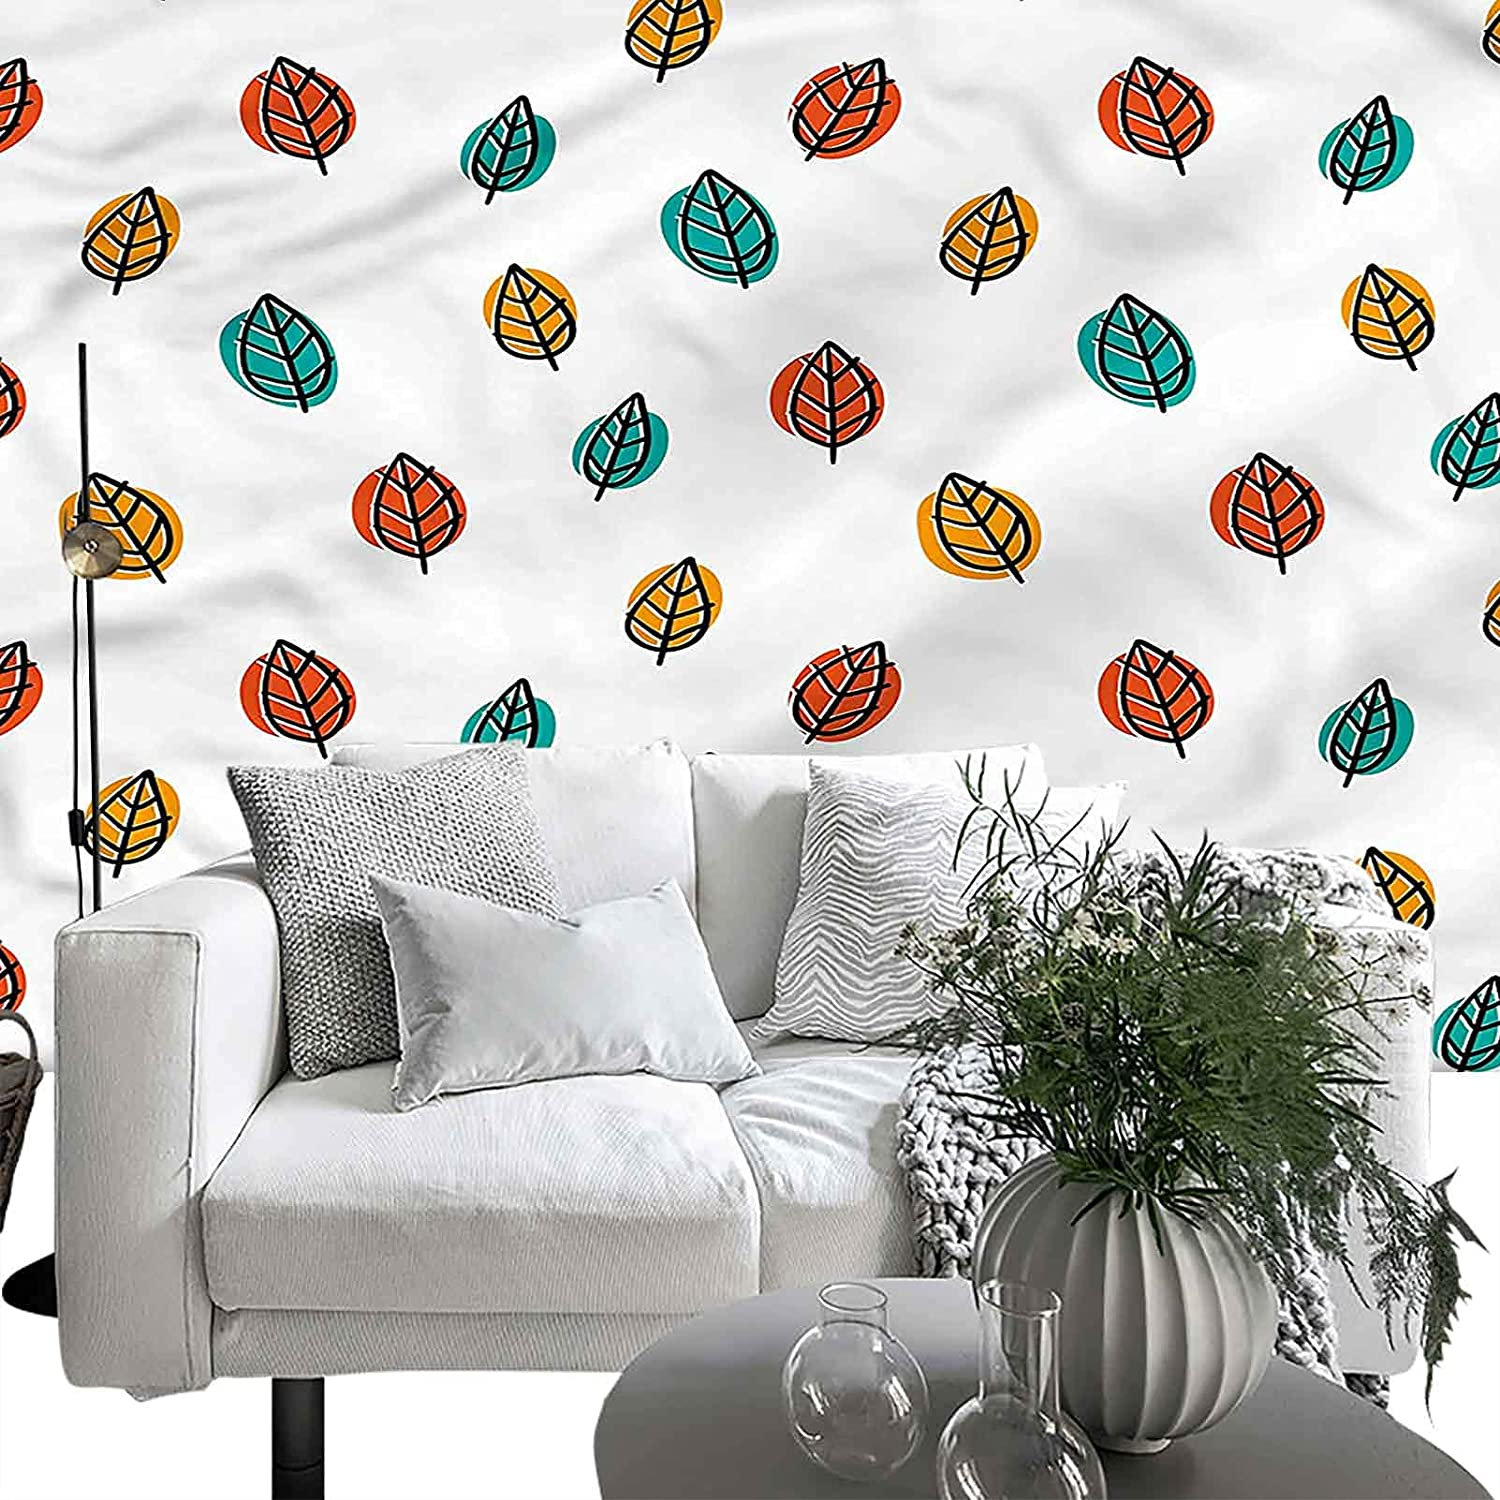 Wall Sticker for Import Bedroom Living Room San Jose Mall Nature Autumn Leave Falling